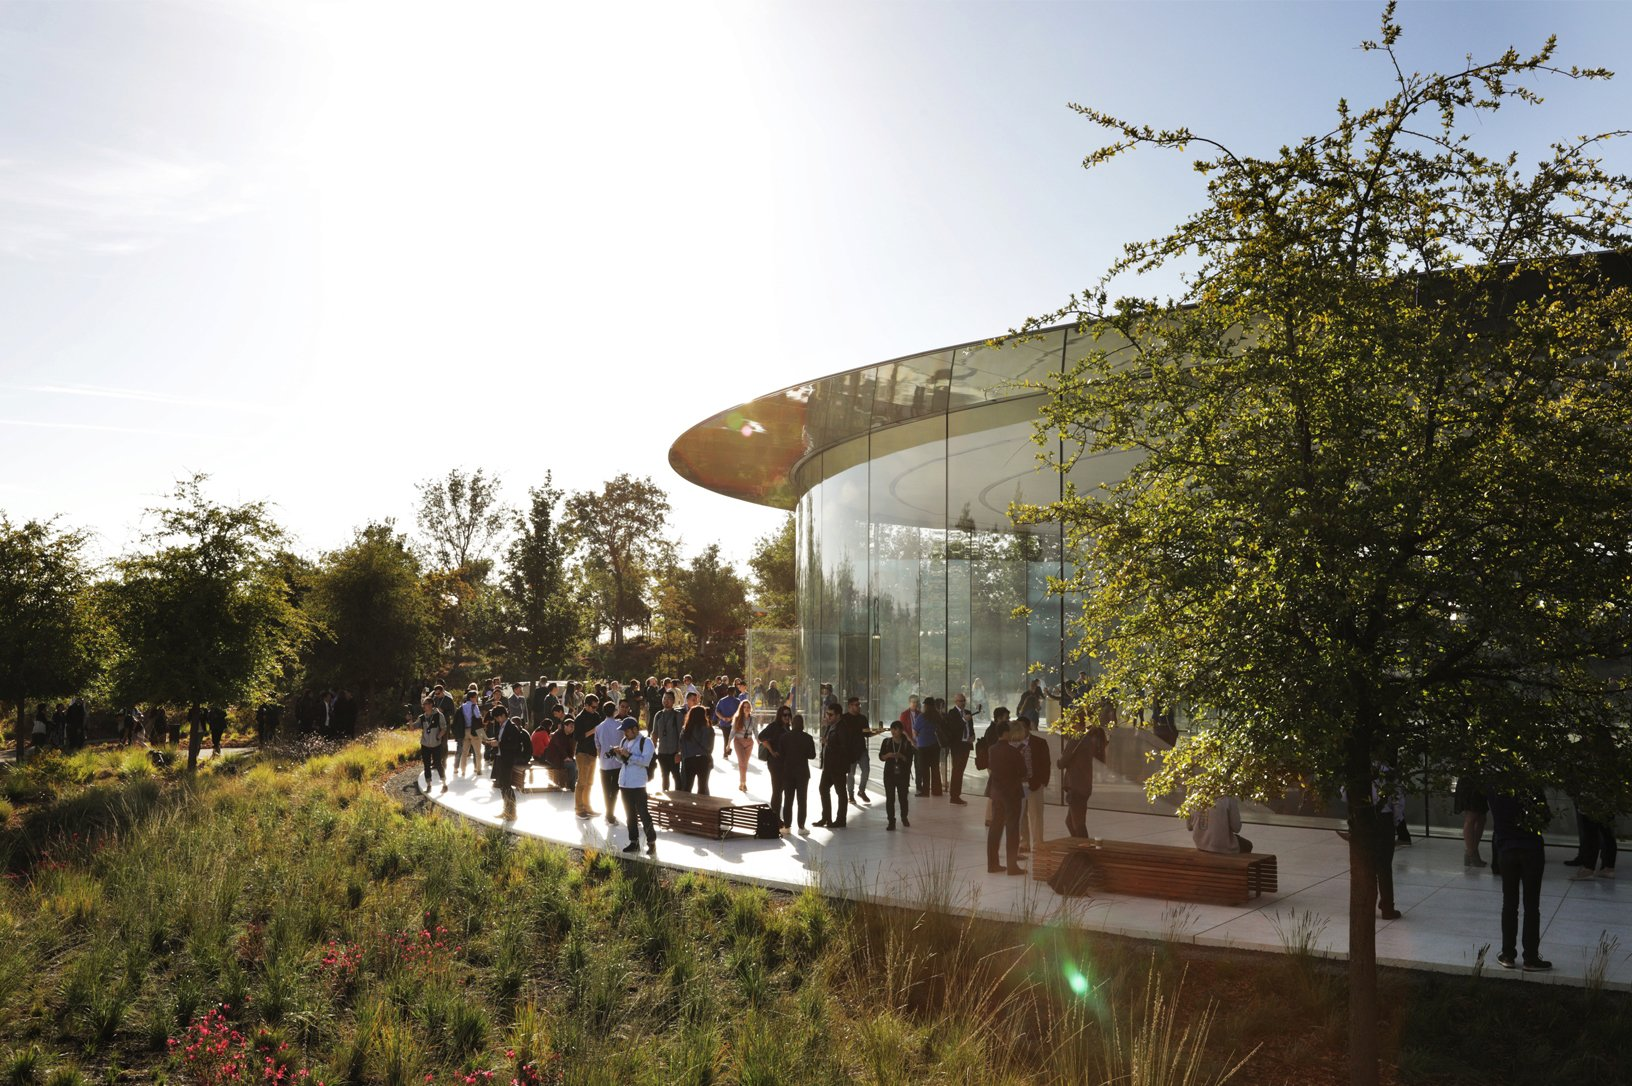 Gäste am Steve Jobs Theater im Apple Park